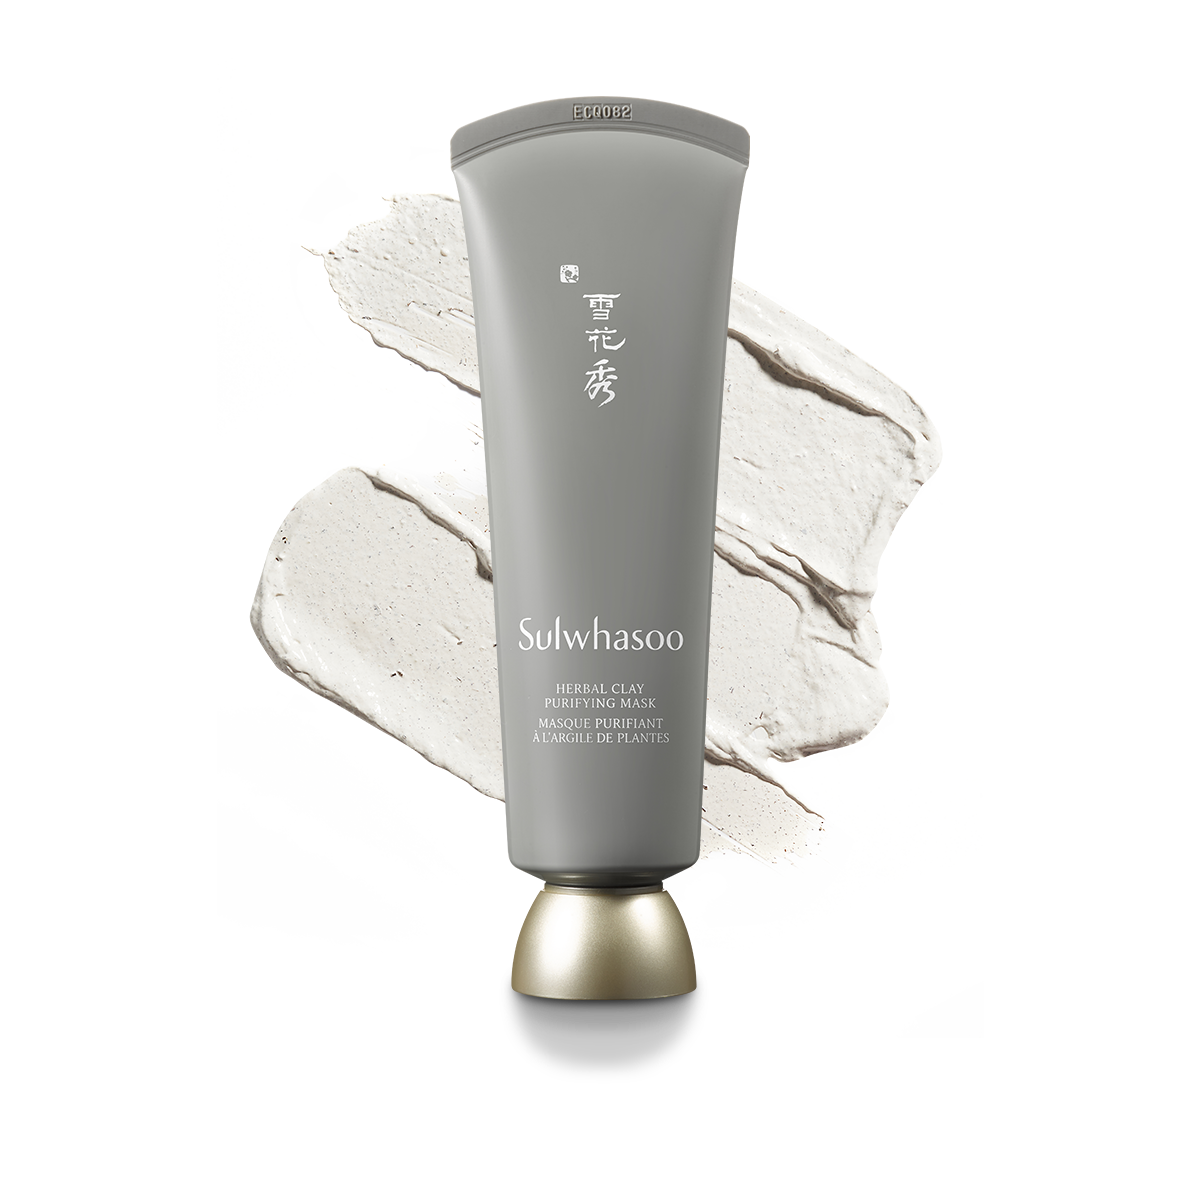 mat-na-sulwhasoo-herbal-clay-purifying-mask-review-thanh-phan-gia-cong-dung-35